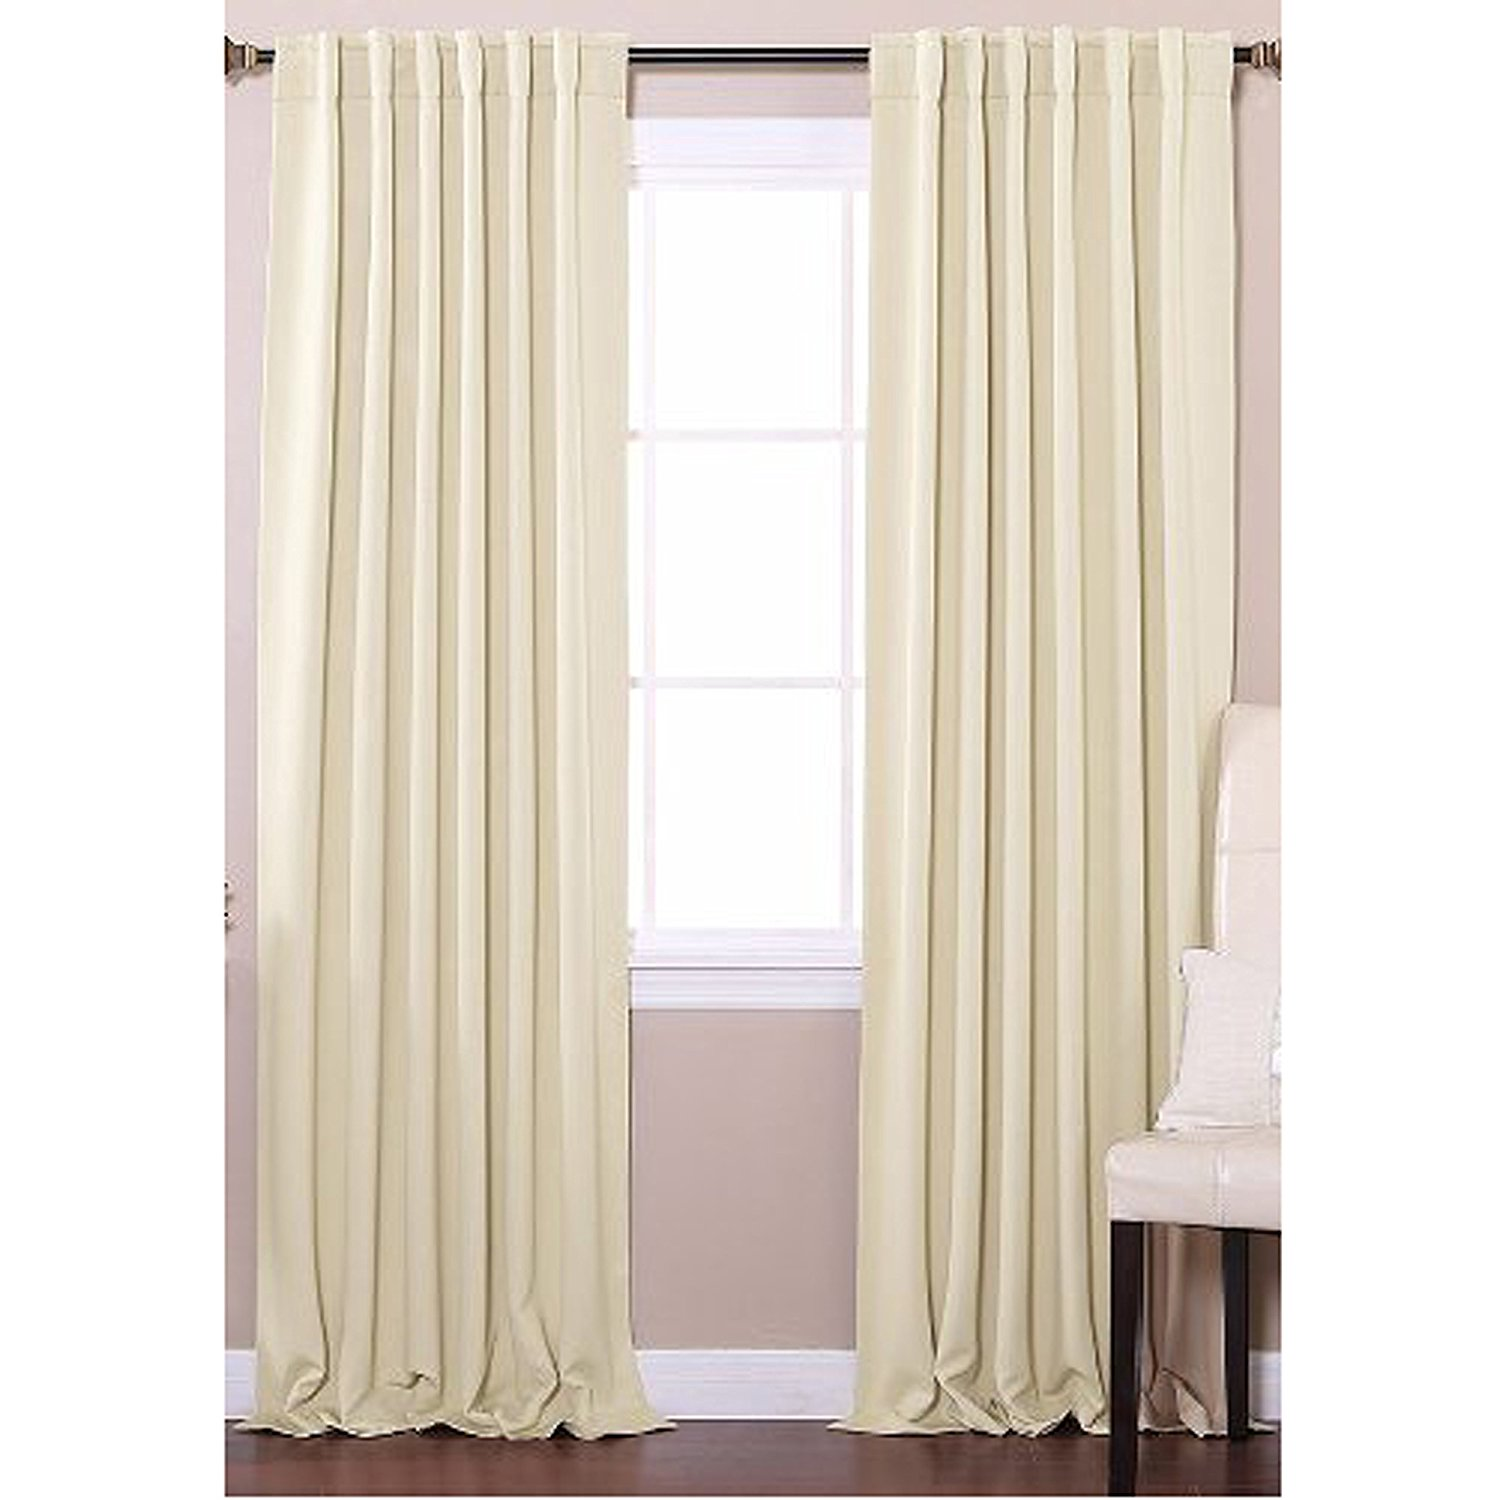 Solid Thermal Insulated Blackout Curtain Panel Set, 52-inch x 84-inch, Beige